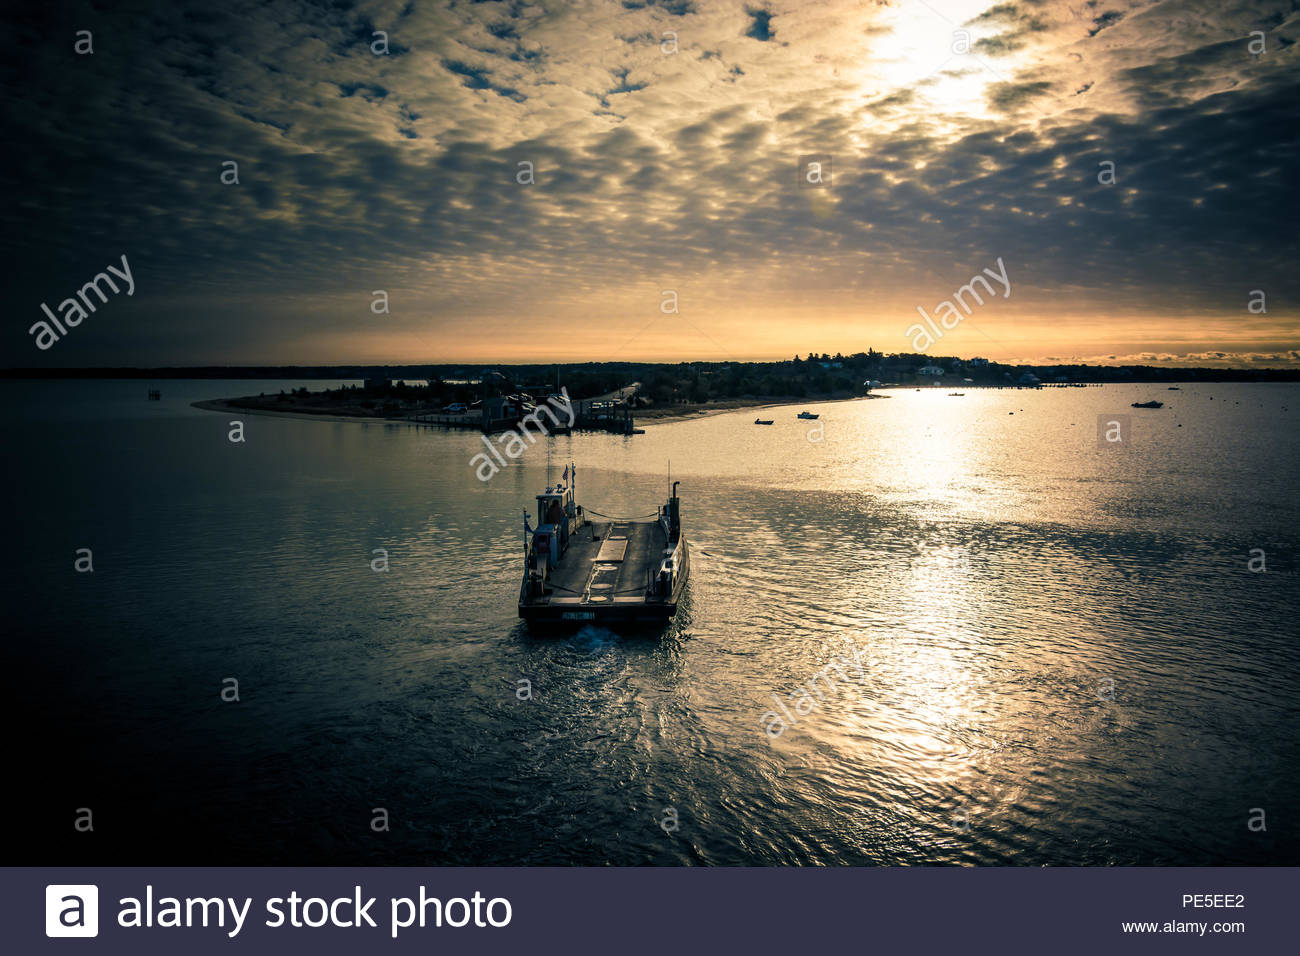 River Ferry at Martha's Vineyard. Sunset on the northern coasts. Stock Photo